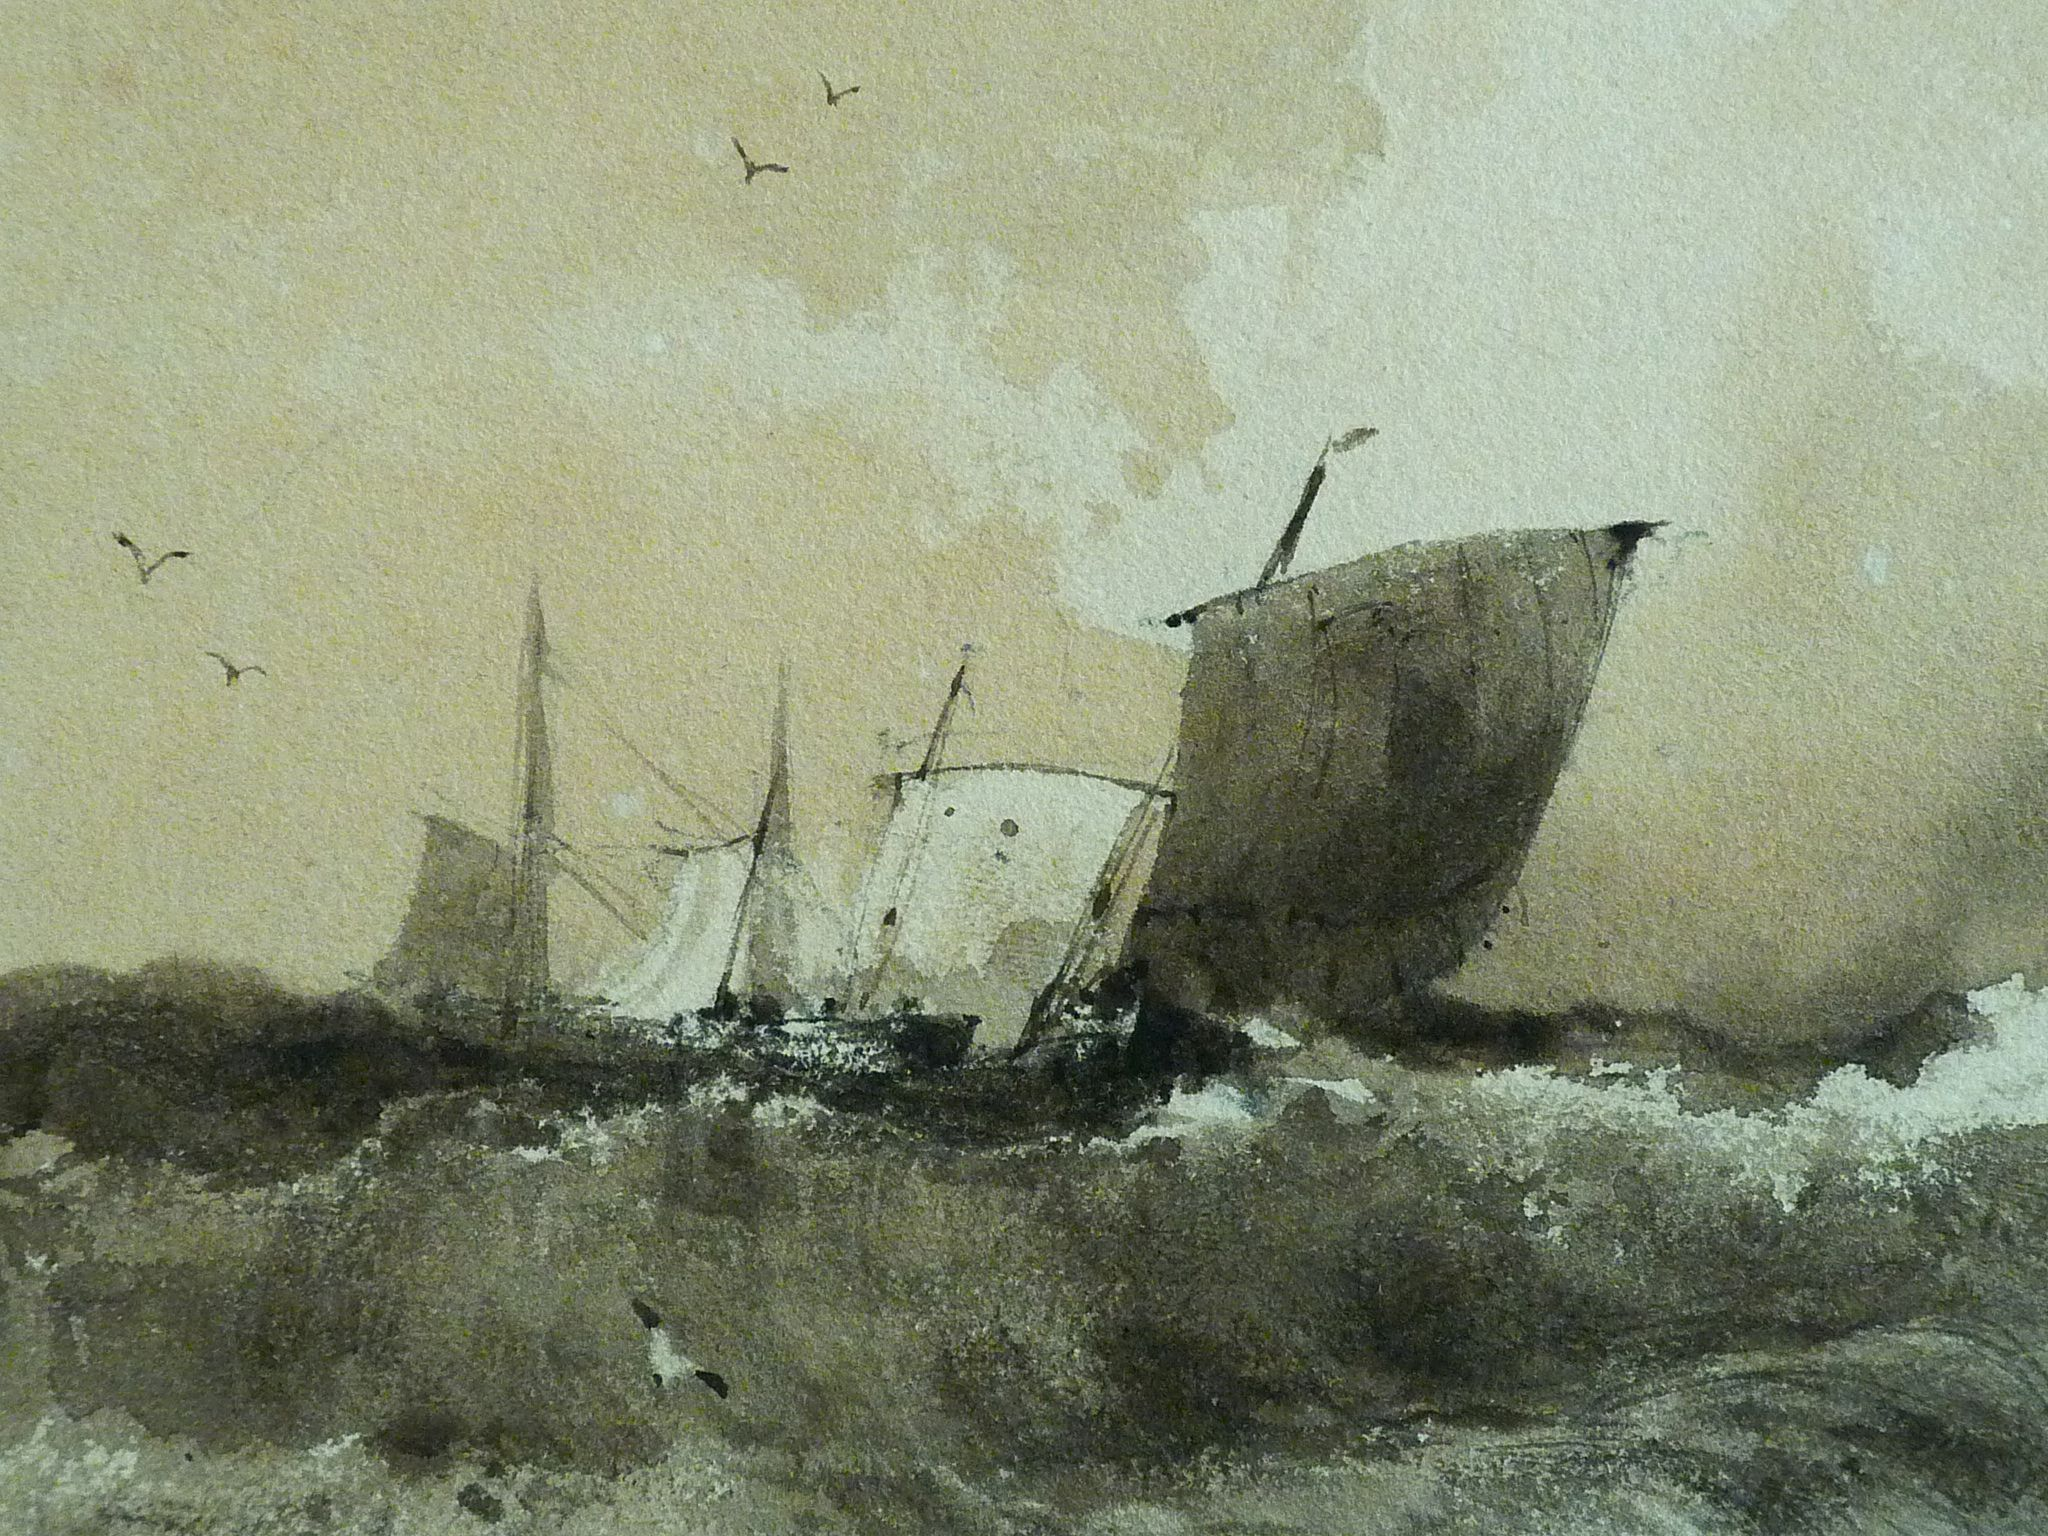 Bonington Richard Parkes 1824 Marine Drawing Dessin Disegno